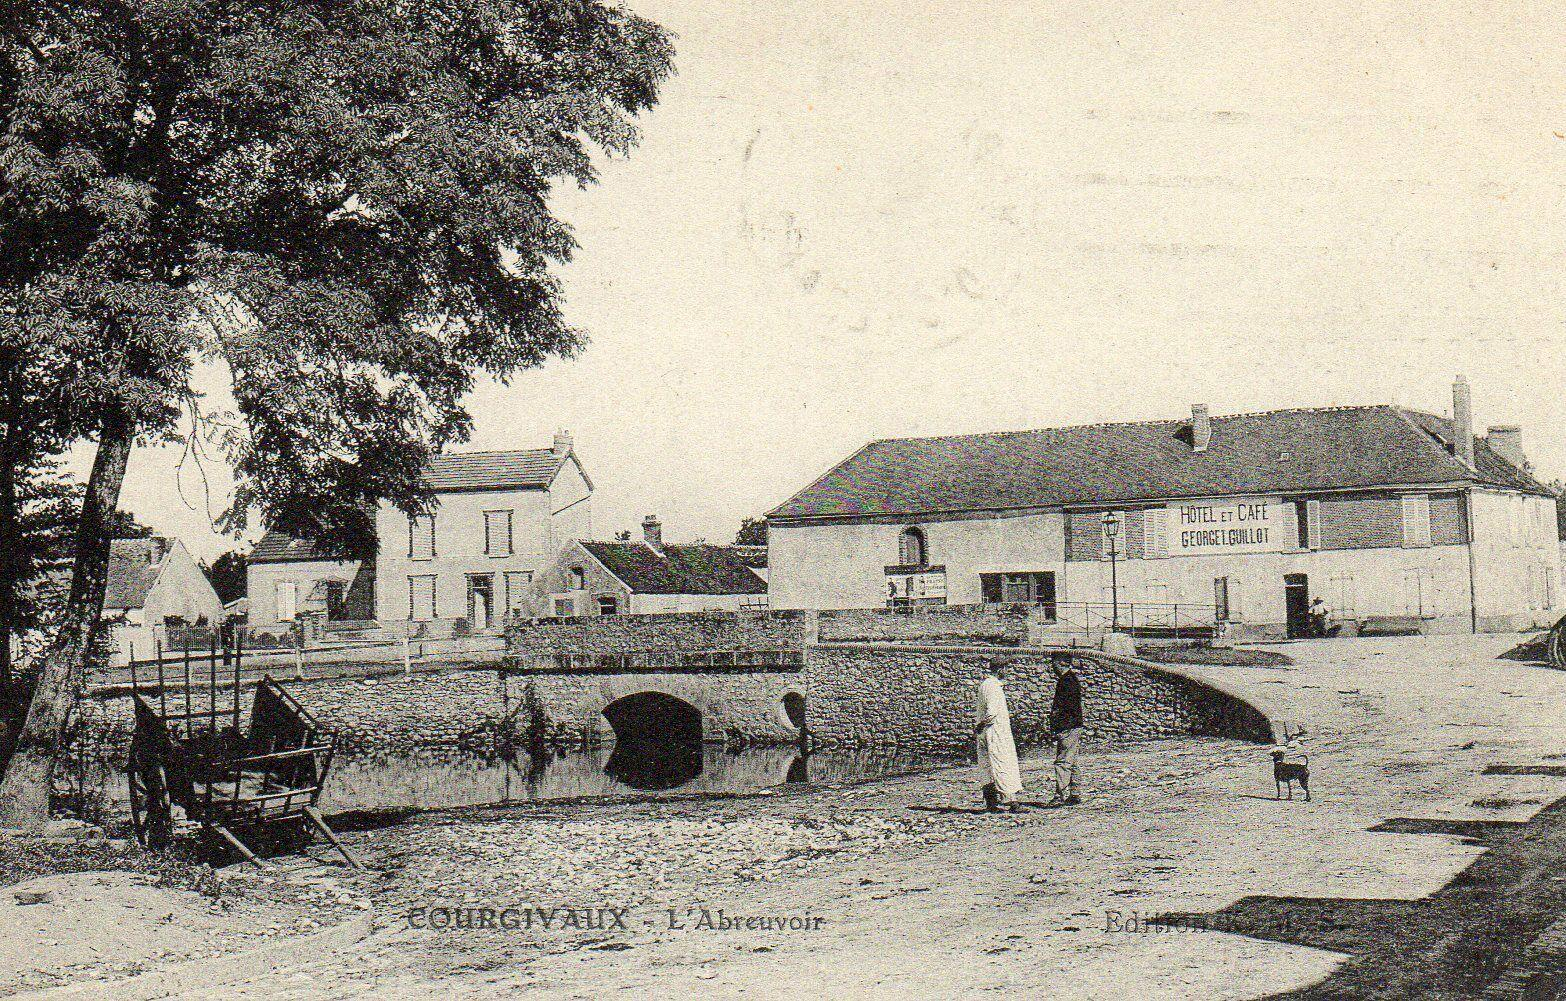 Courgivaux